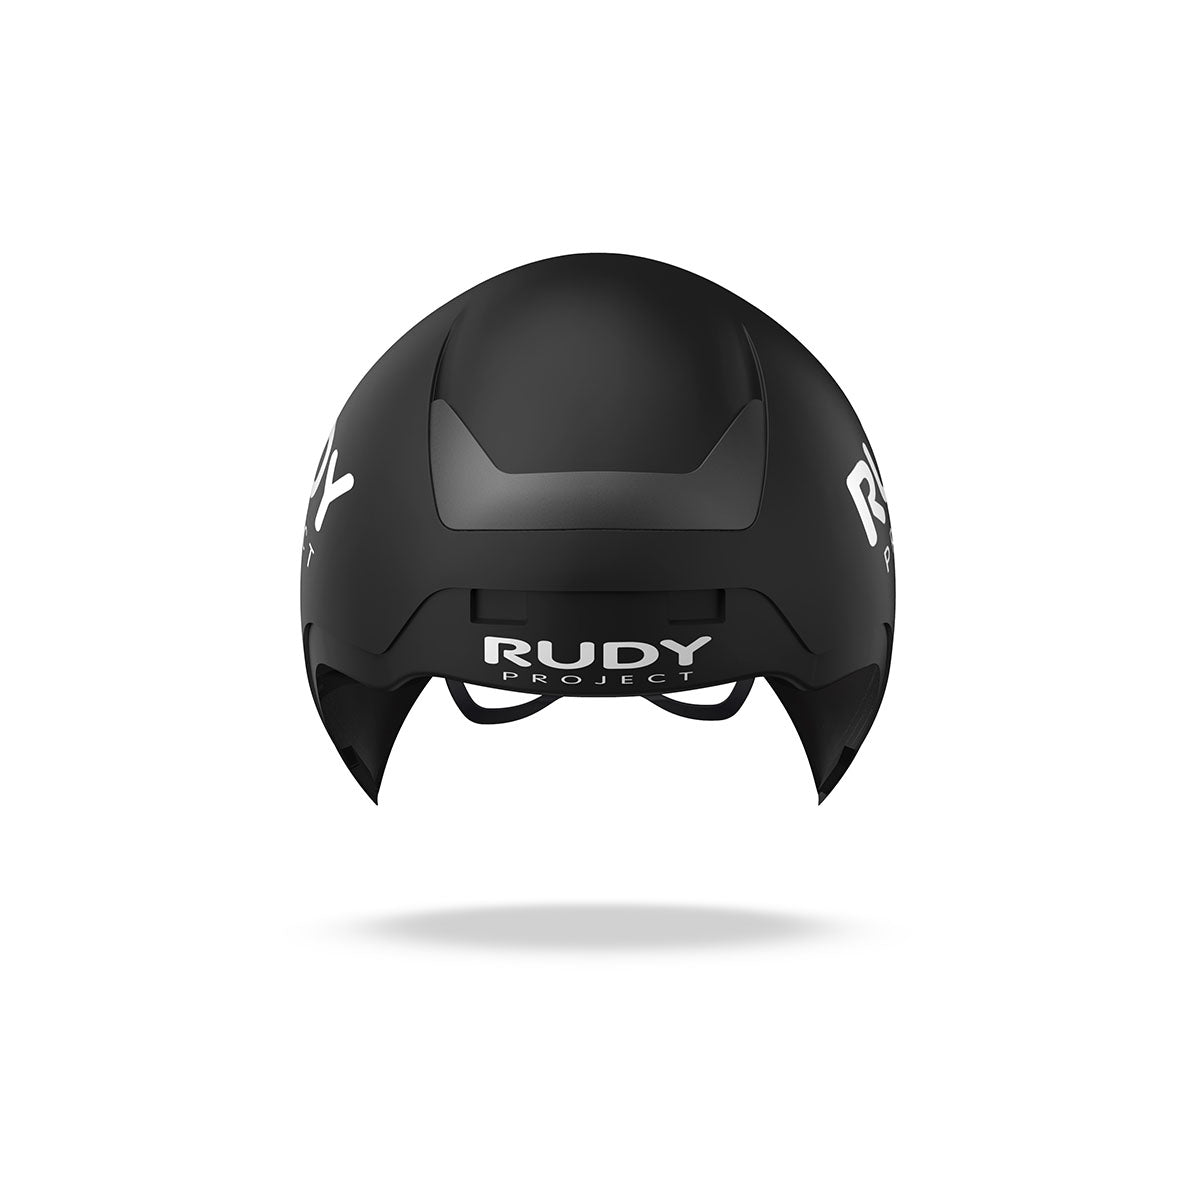 Rudy Project - The Wing - color: Black - photo angle: Front Without Visor Variant Hover Image